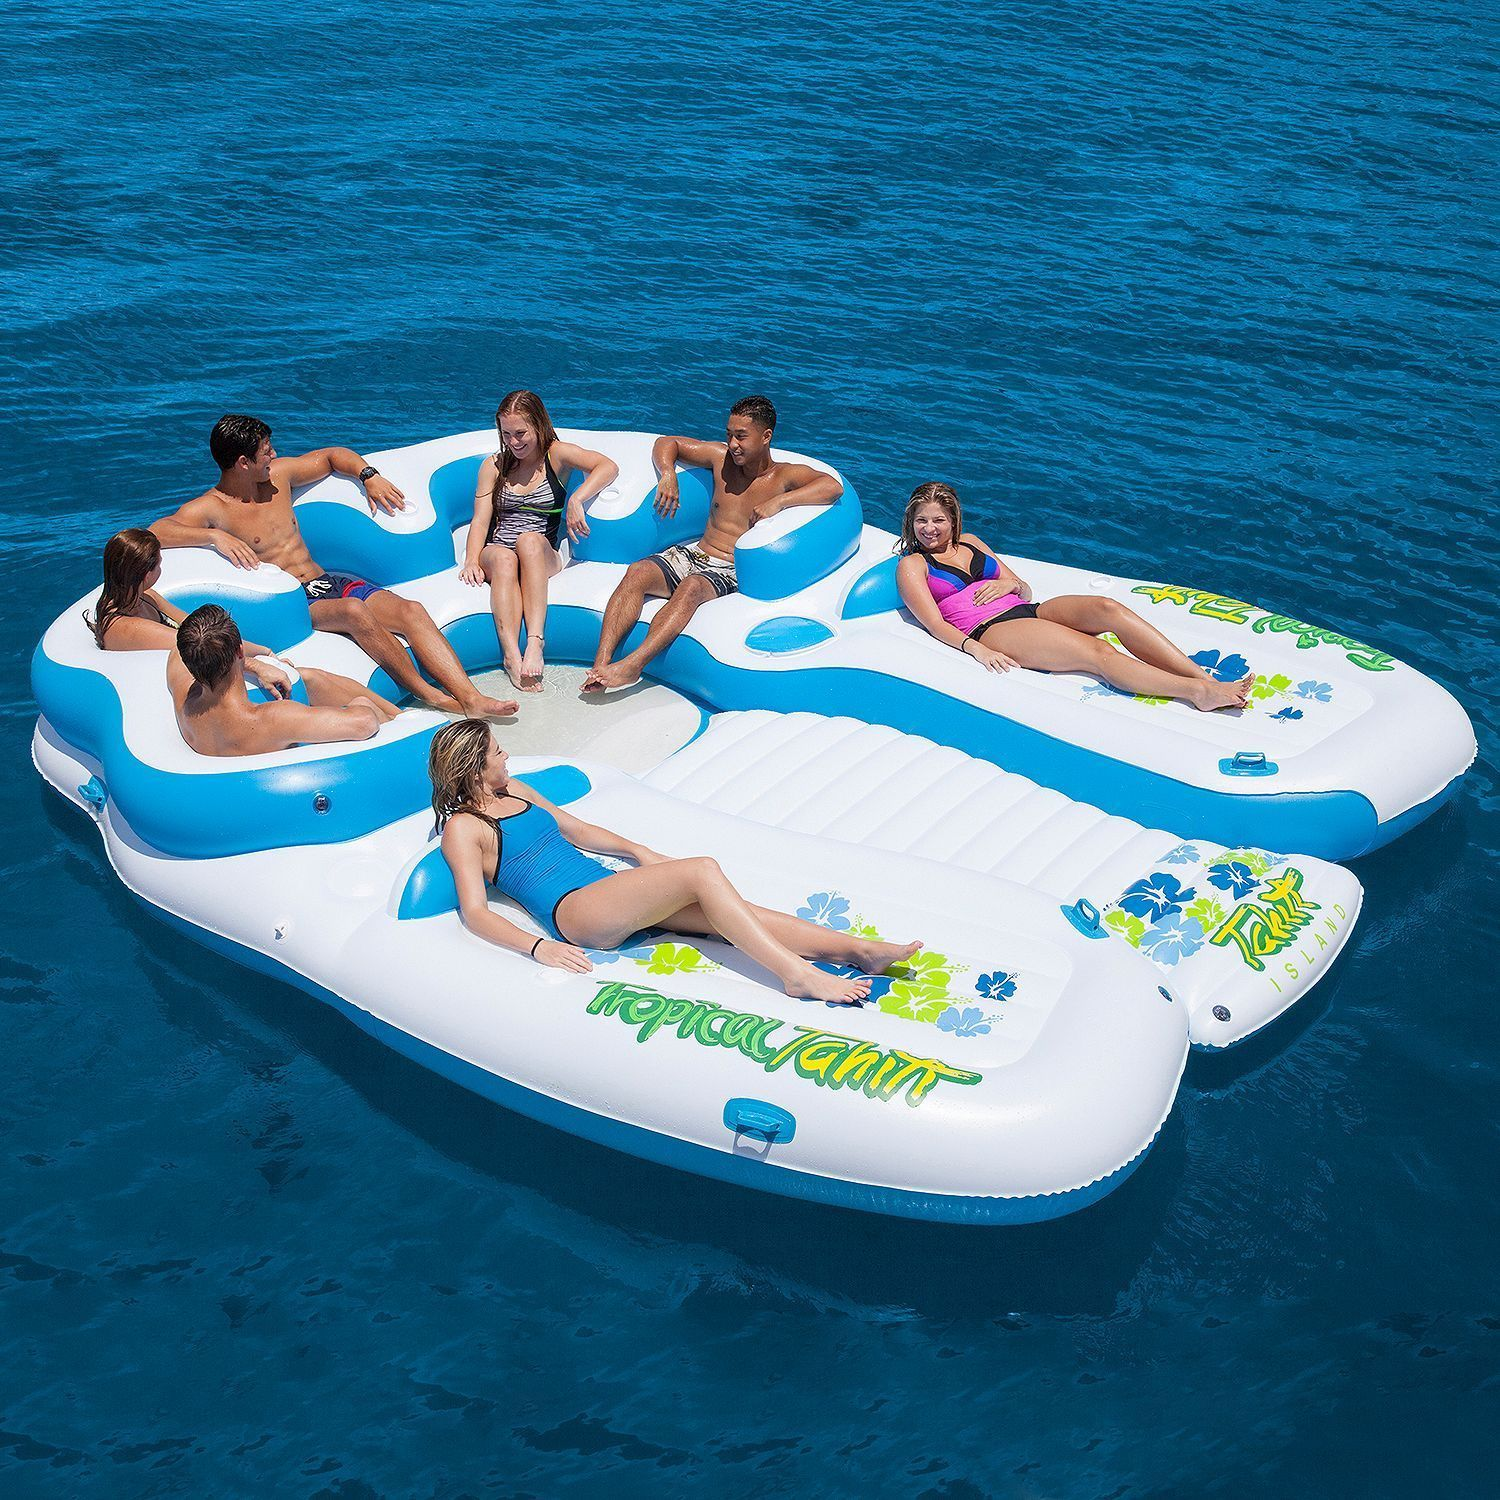 Inflatable Floats And Tubes 79801: Huge Inflatable Floating Island 7 Person  Raft Lake Float Cooler